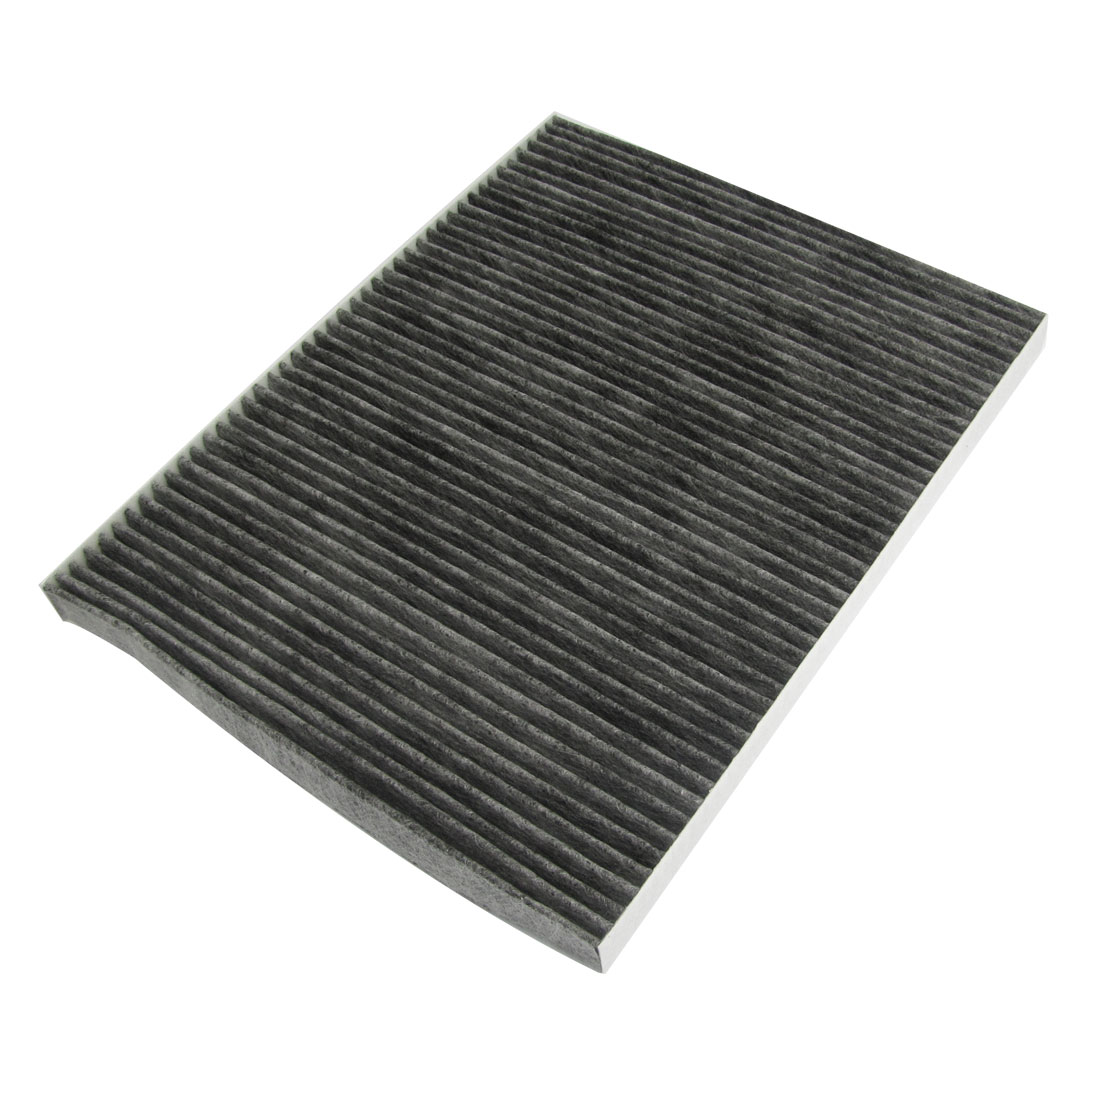 Black Active Carbon Fiber A/C Cabin Air Filter for Nissan Aeolus